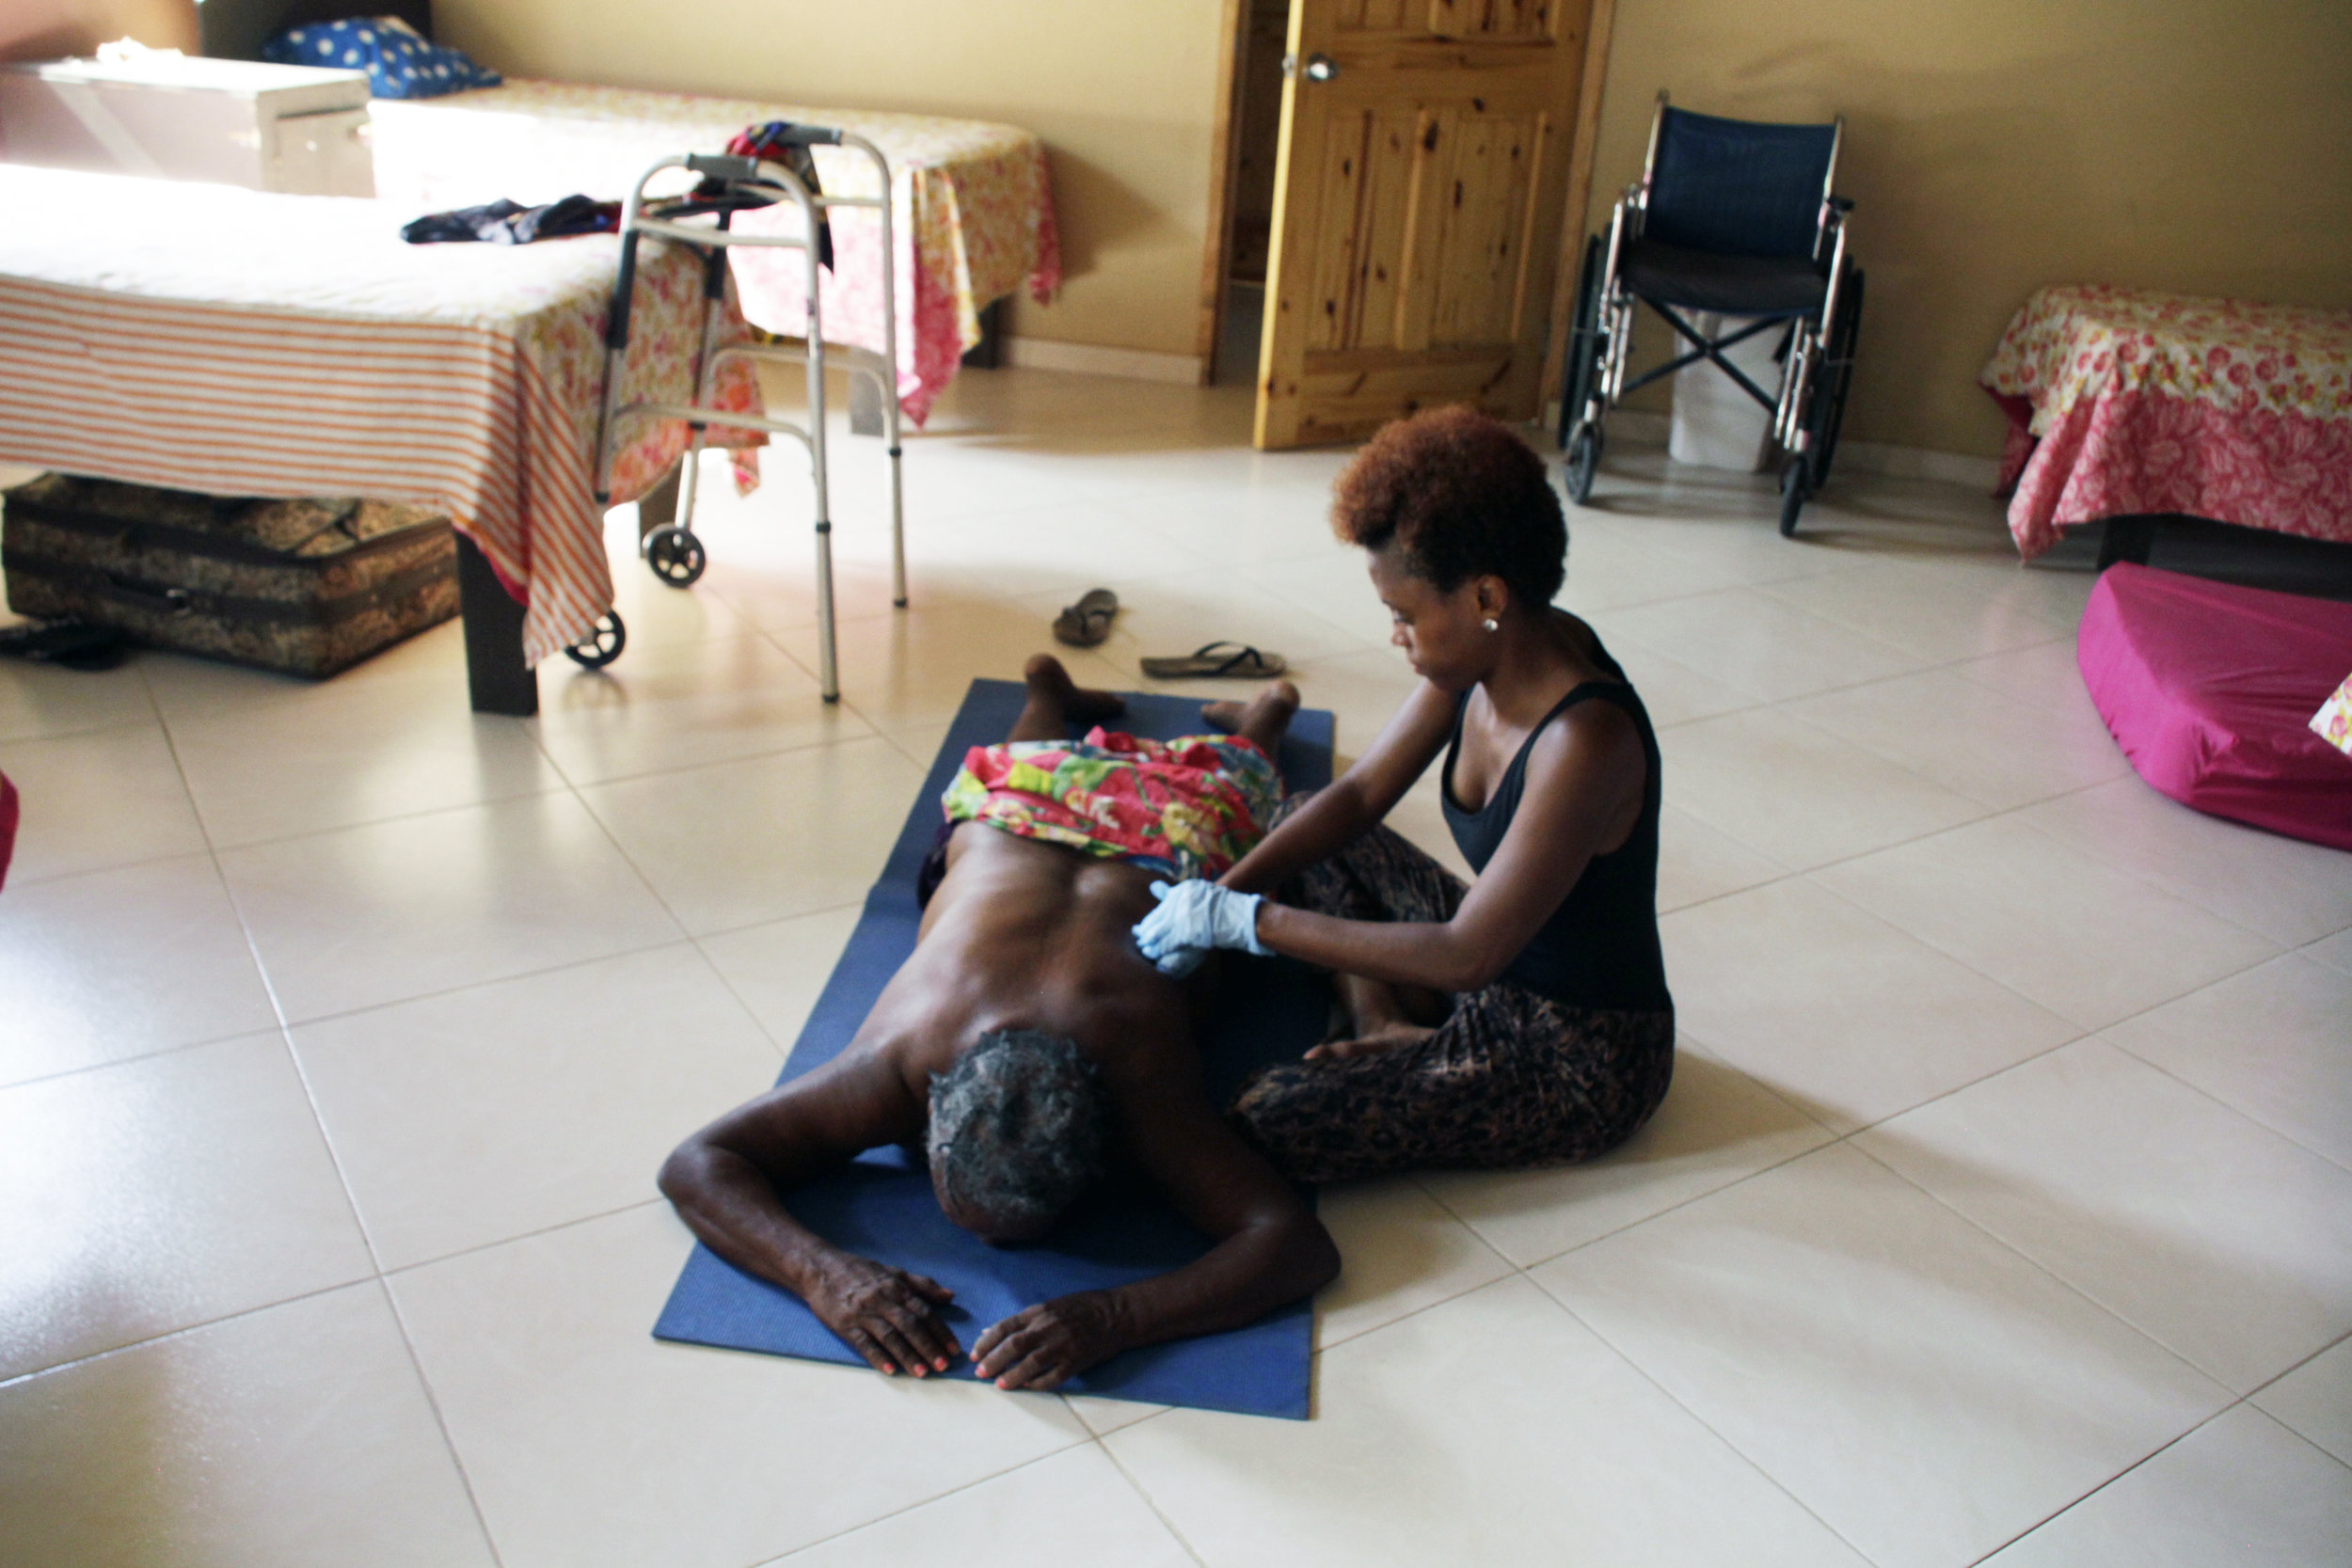 Pictured: 6 Month Intern, Carine Dorlus providing Physical Therapy to one of the Grandmas at the Home of Grace Elderly Home in Carries, Haiti. Home of Grace Elderly Home is a ministry of Mission of Grace. Carine completed her 6 month internship and the following semester graduated from Penn State University. Carine now serves as an advocate and translator for ATL4Haiti.